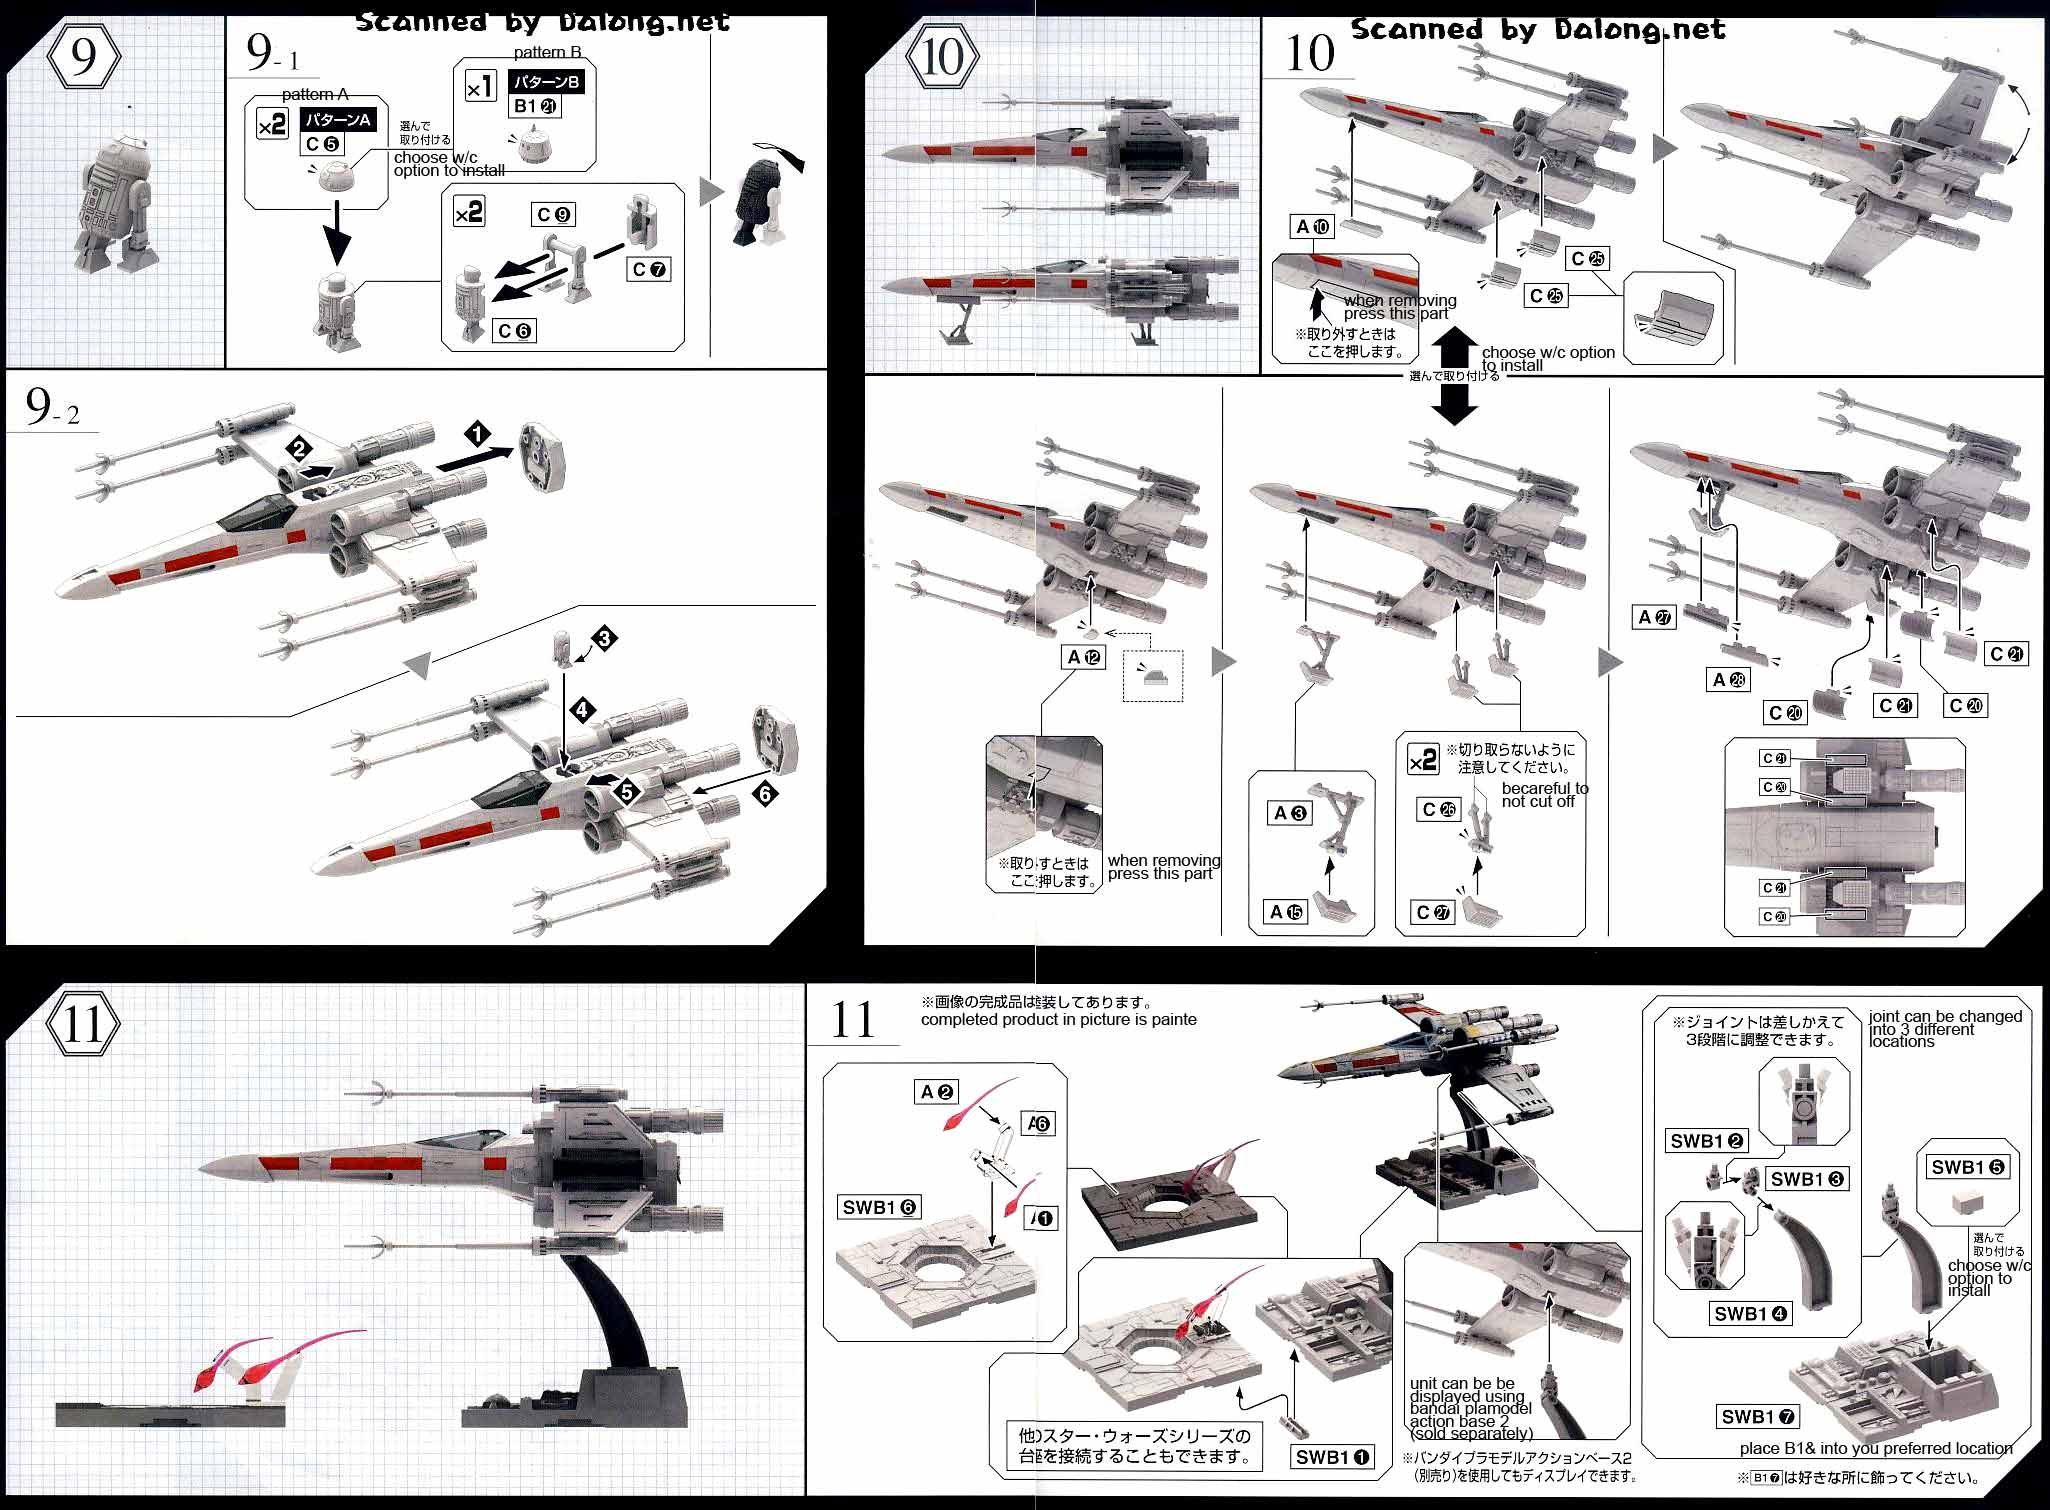 1/72 X-Wing Starfighter English Manual & Color Guide